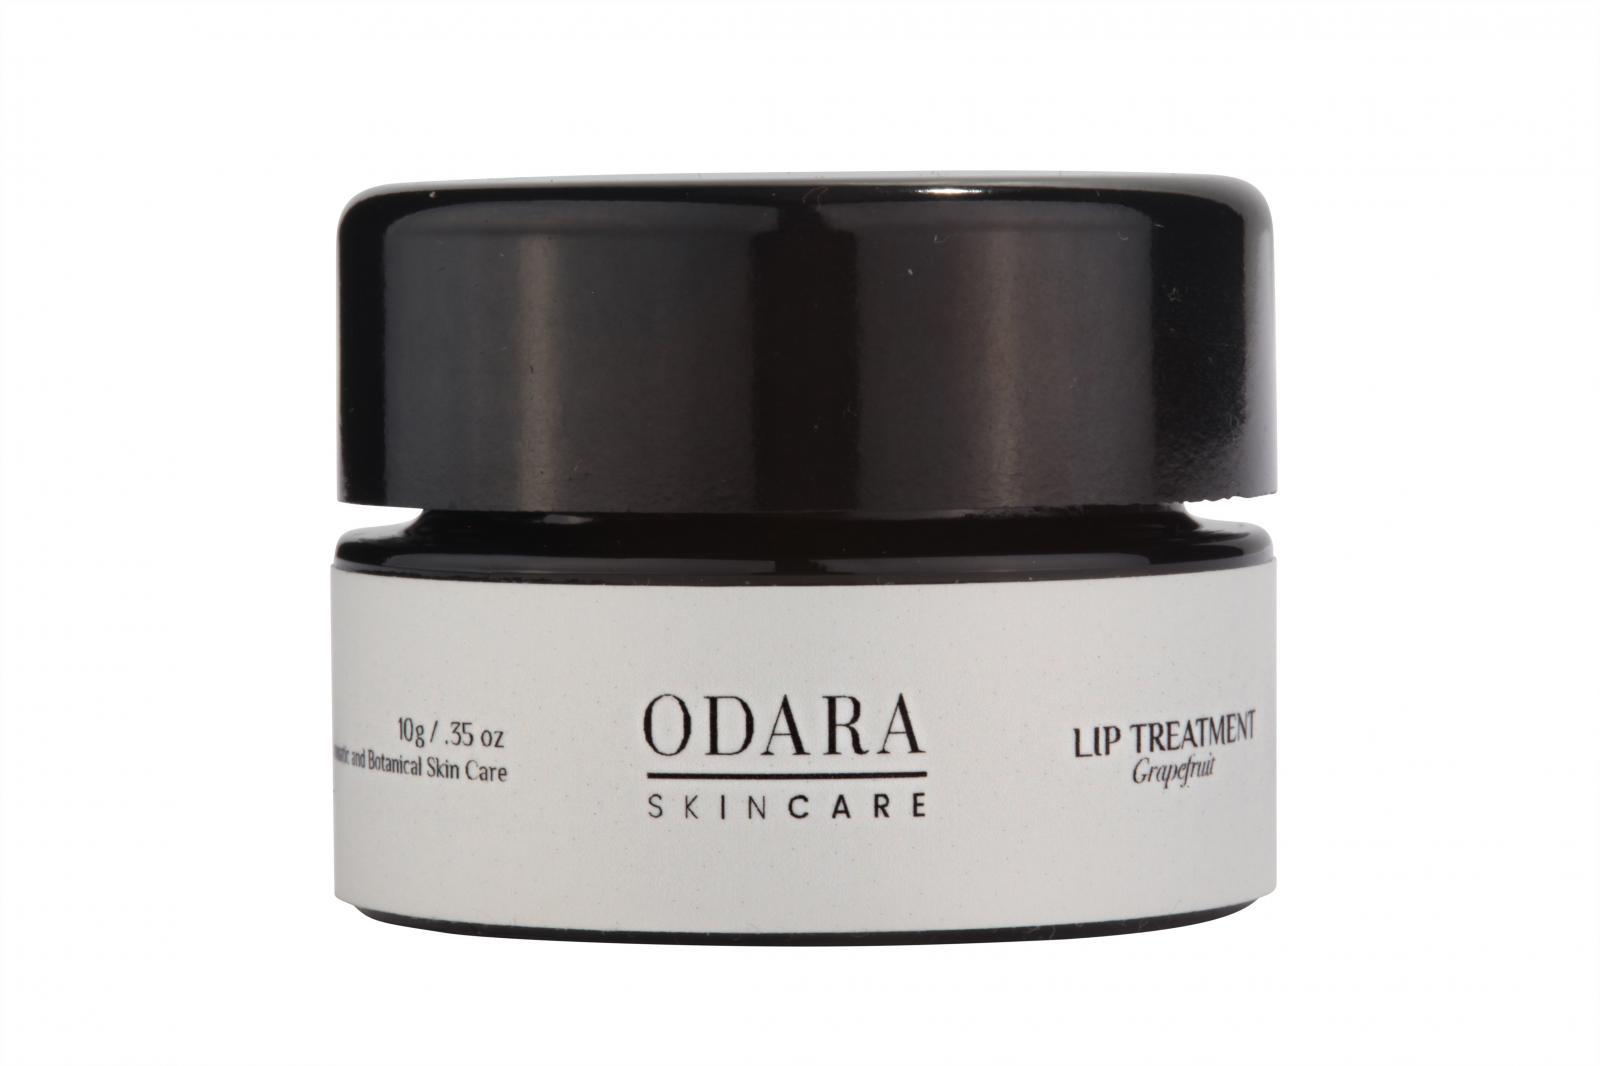 ODARA Lip Treatment, Grapefruit 10 ml